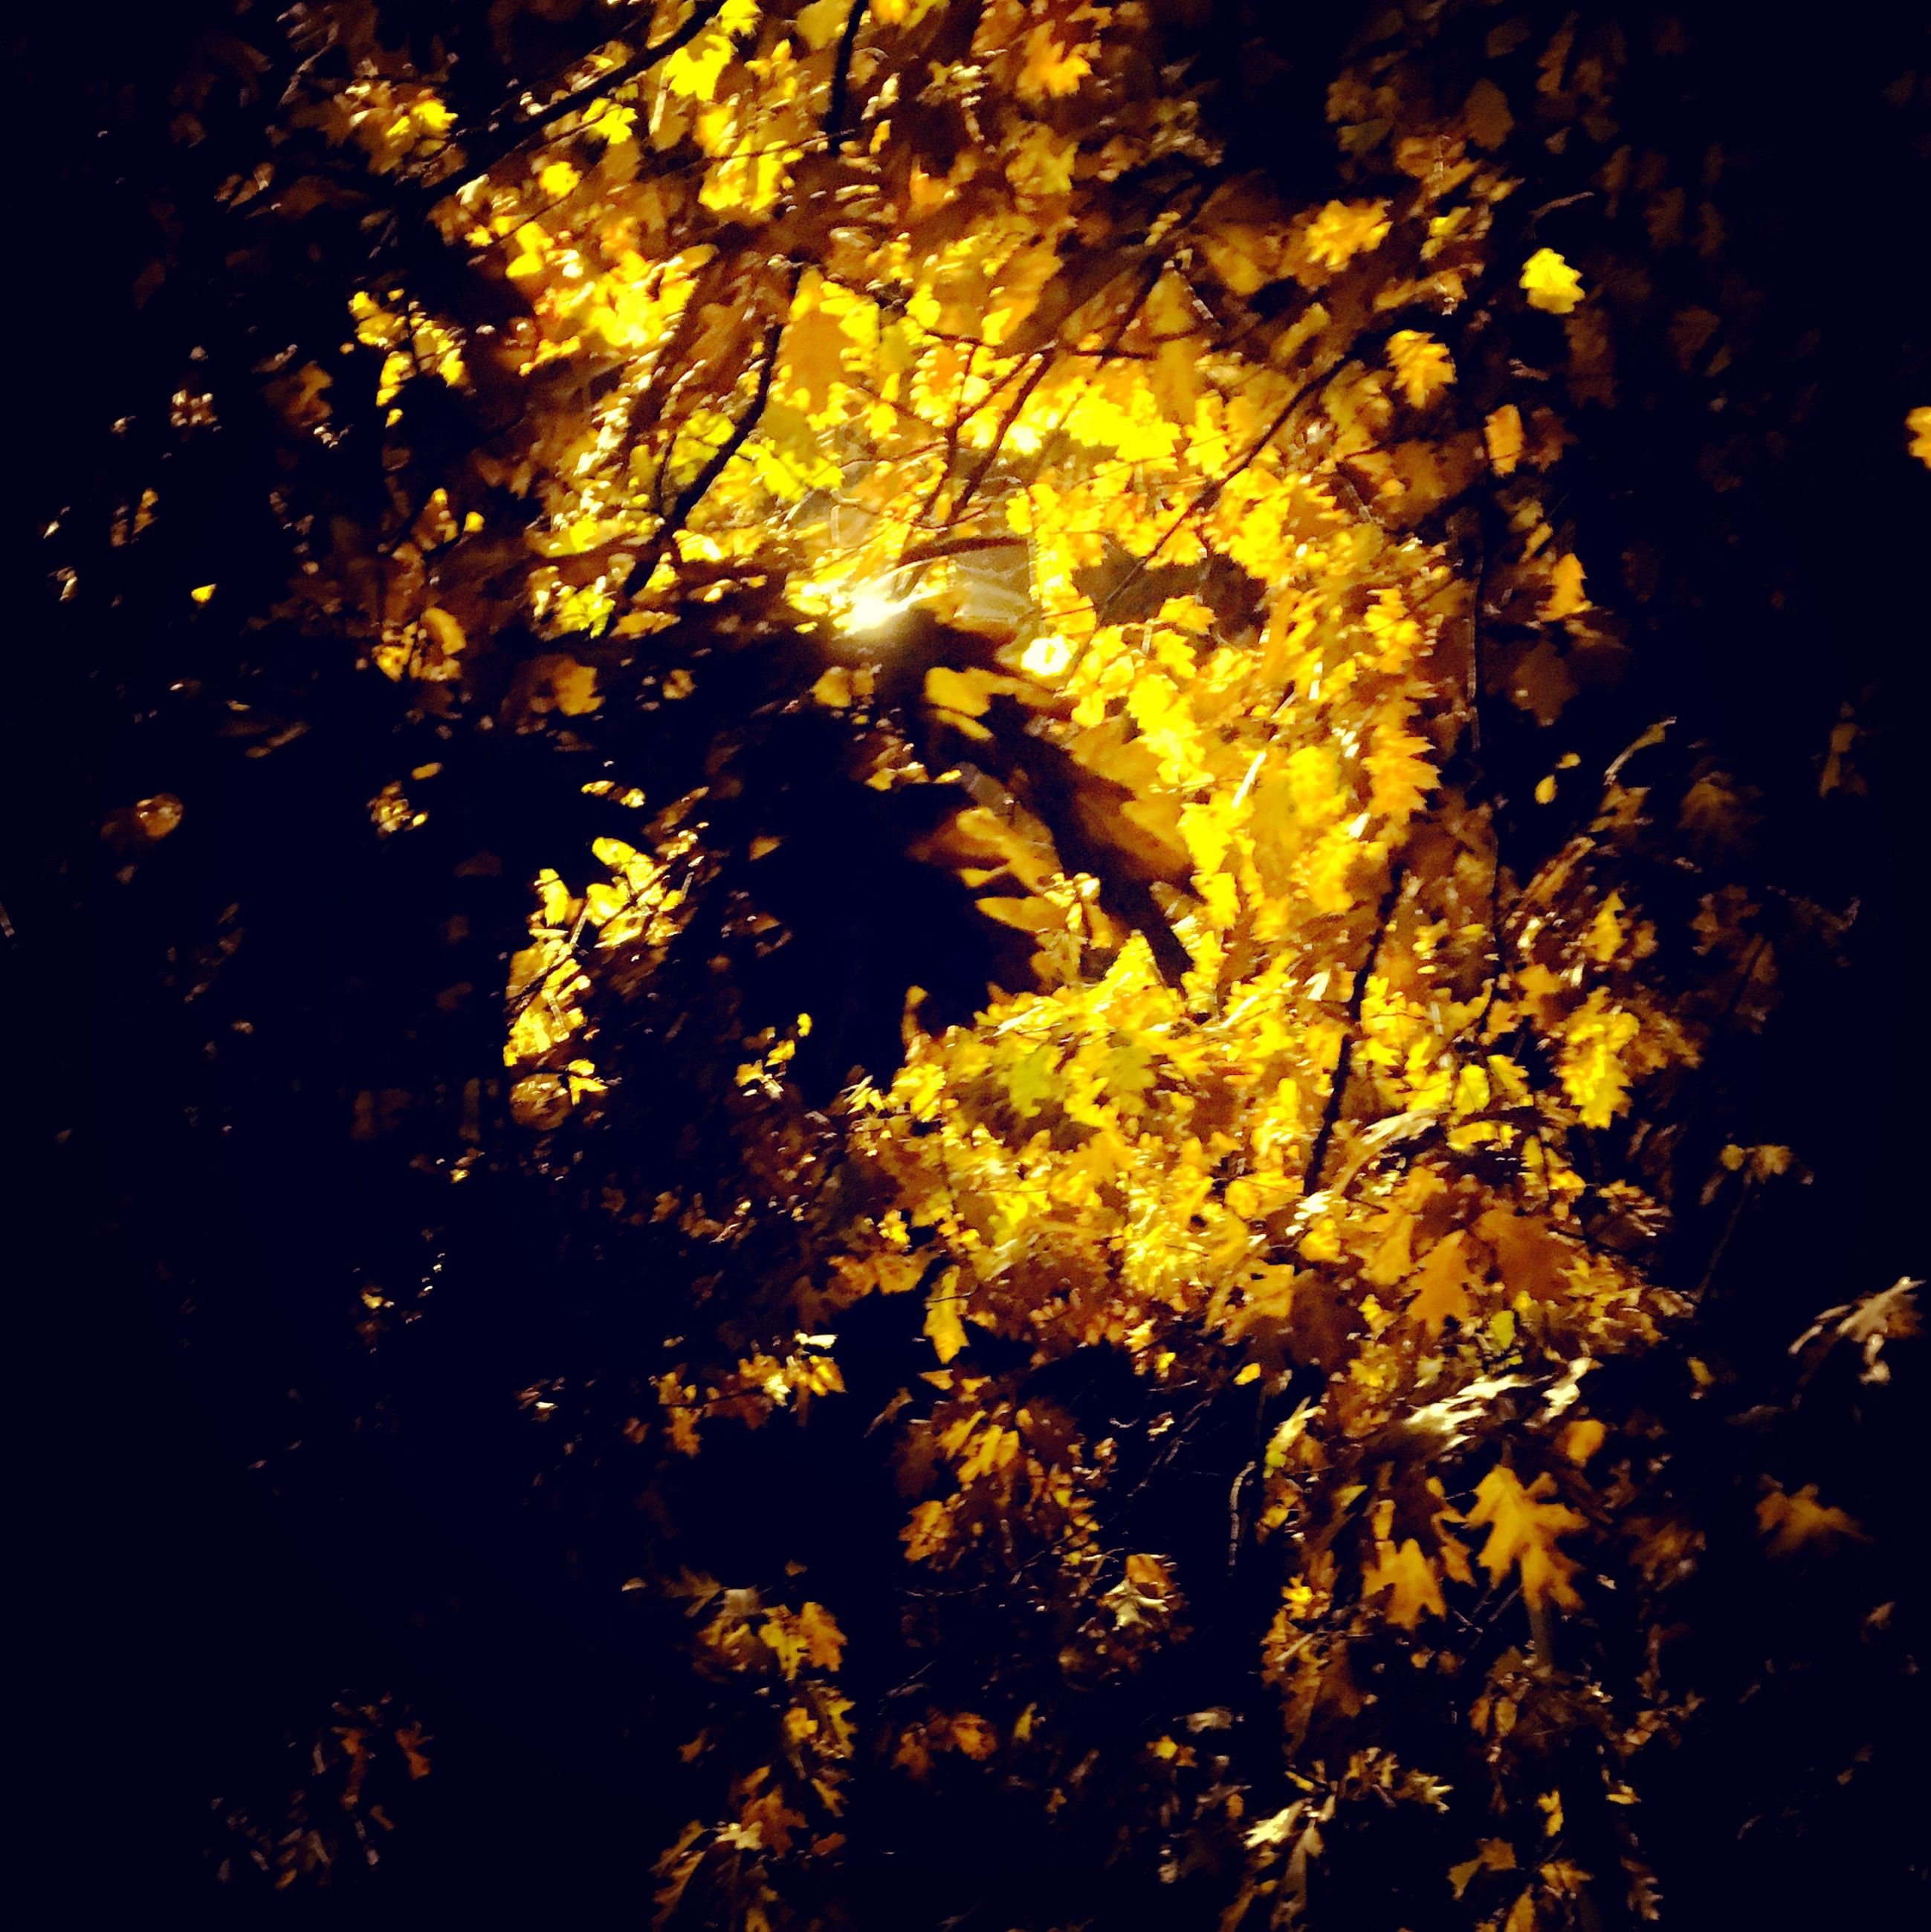 tree, branch, growth, low angle view, tranquility, nature, forest, beauty in nature, sunlight, silhouette, leaf, yellow, scenics, tranquil scene, autumn, outdoors, no people, night, sunbeam, sun